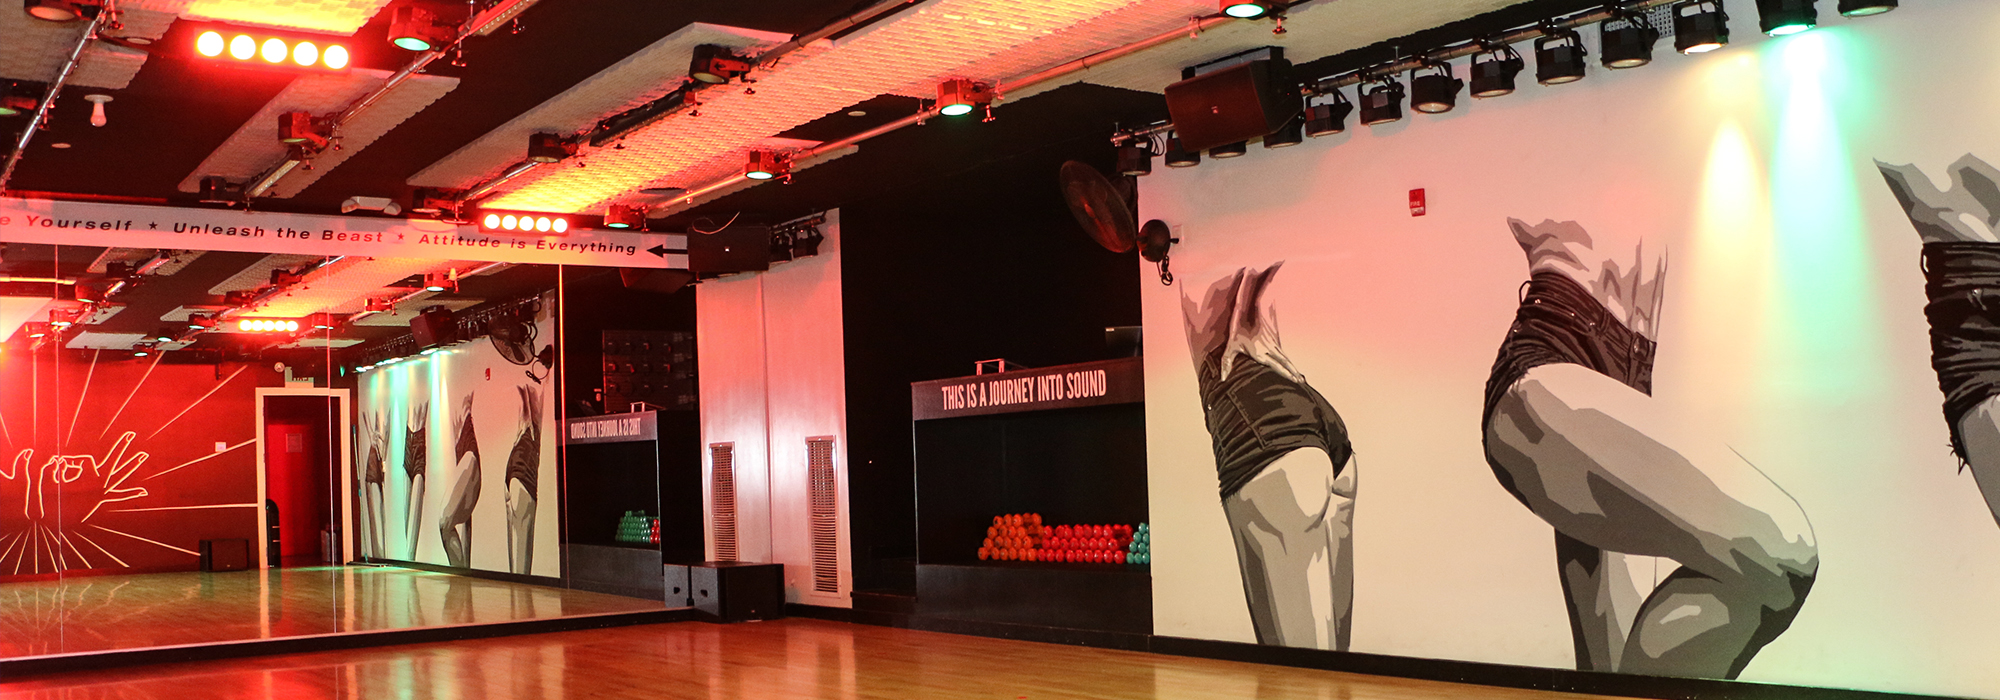 305 Fitness NYC fun workout studio space